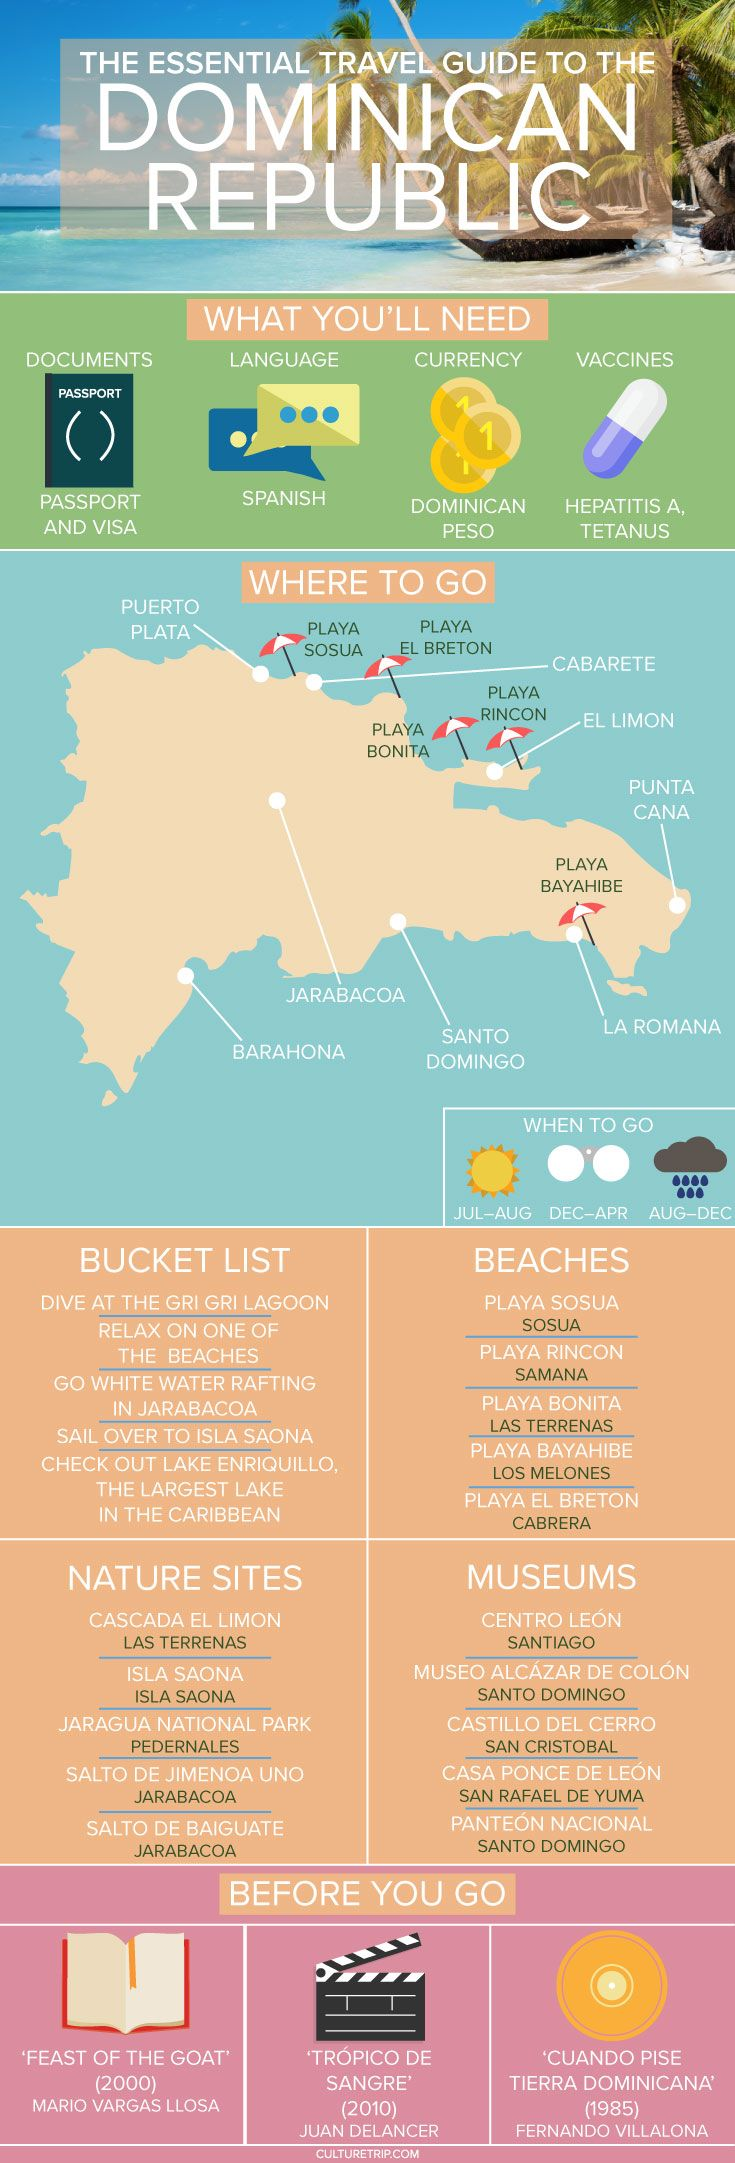 The Essential Travel Guide to the Dominican